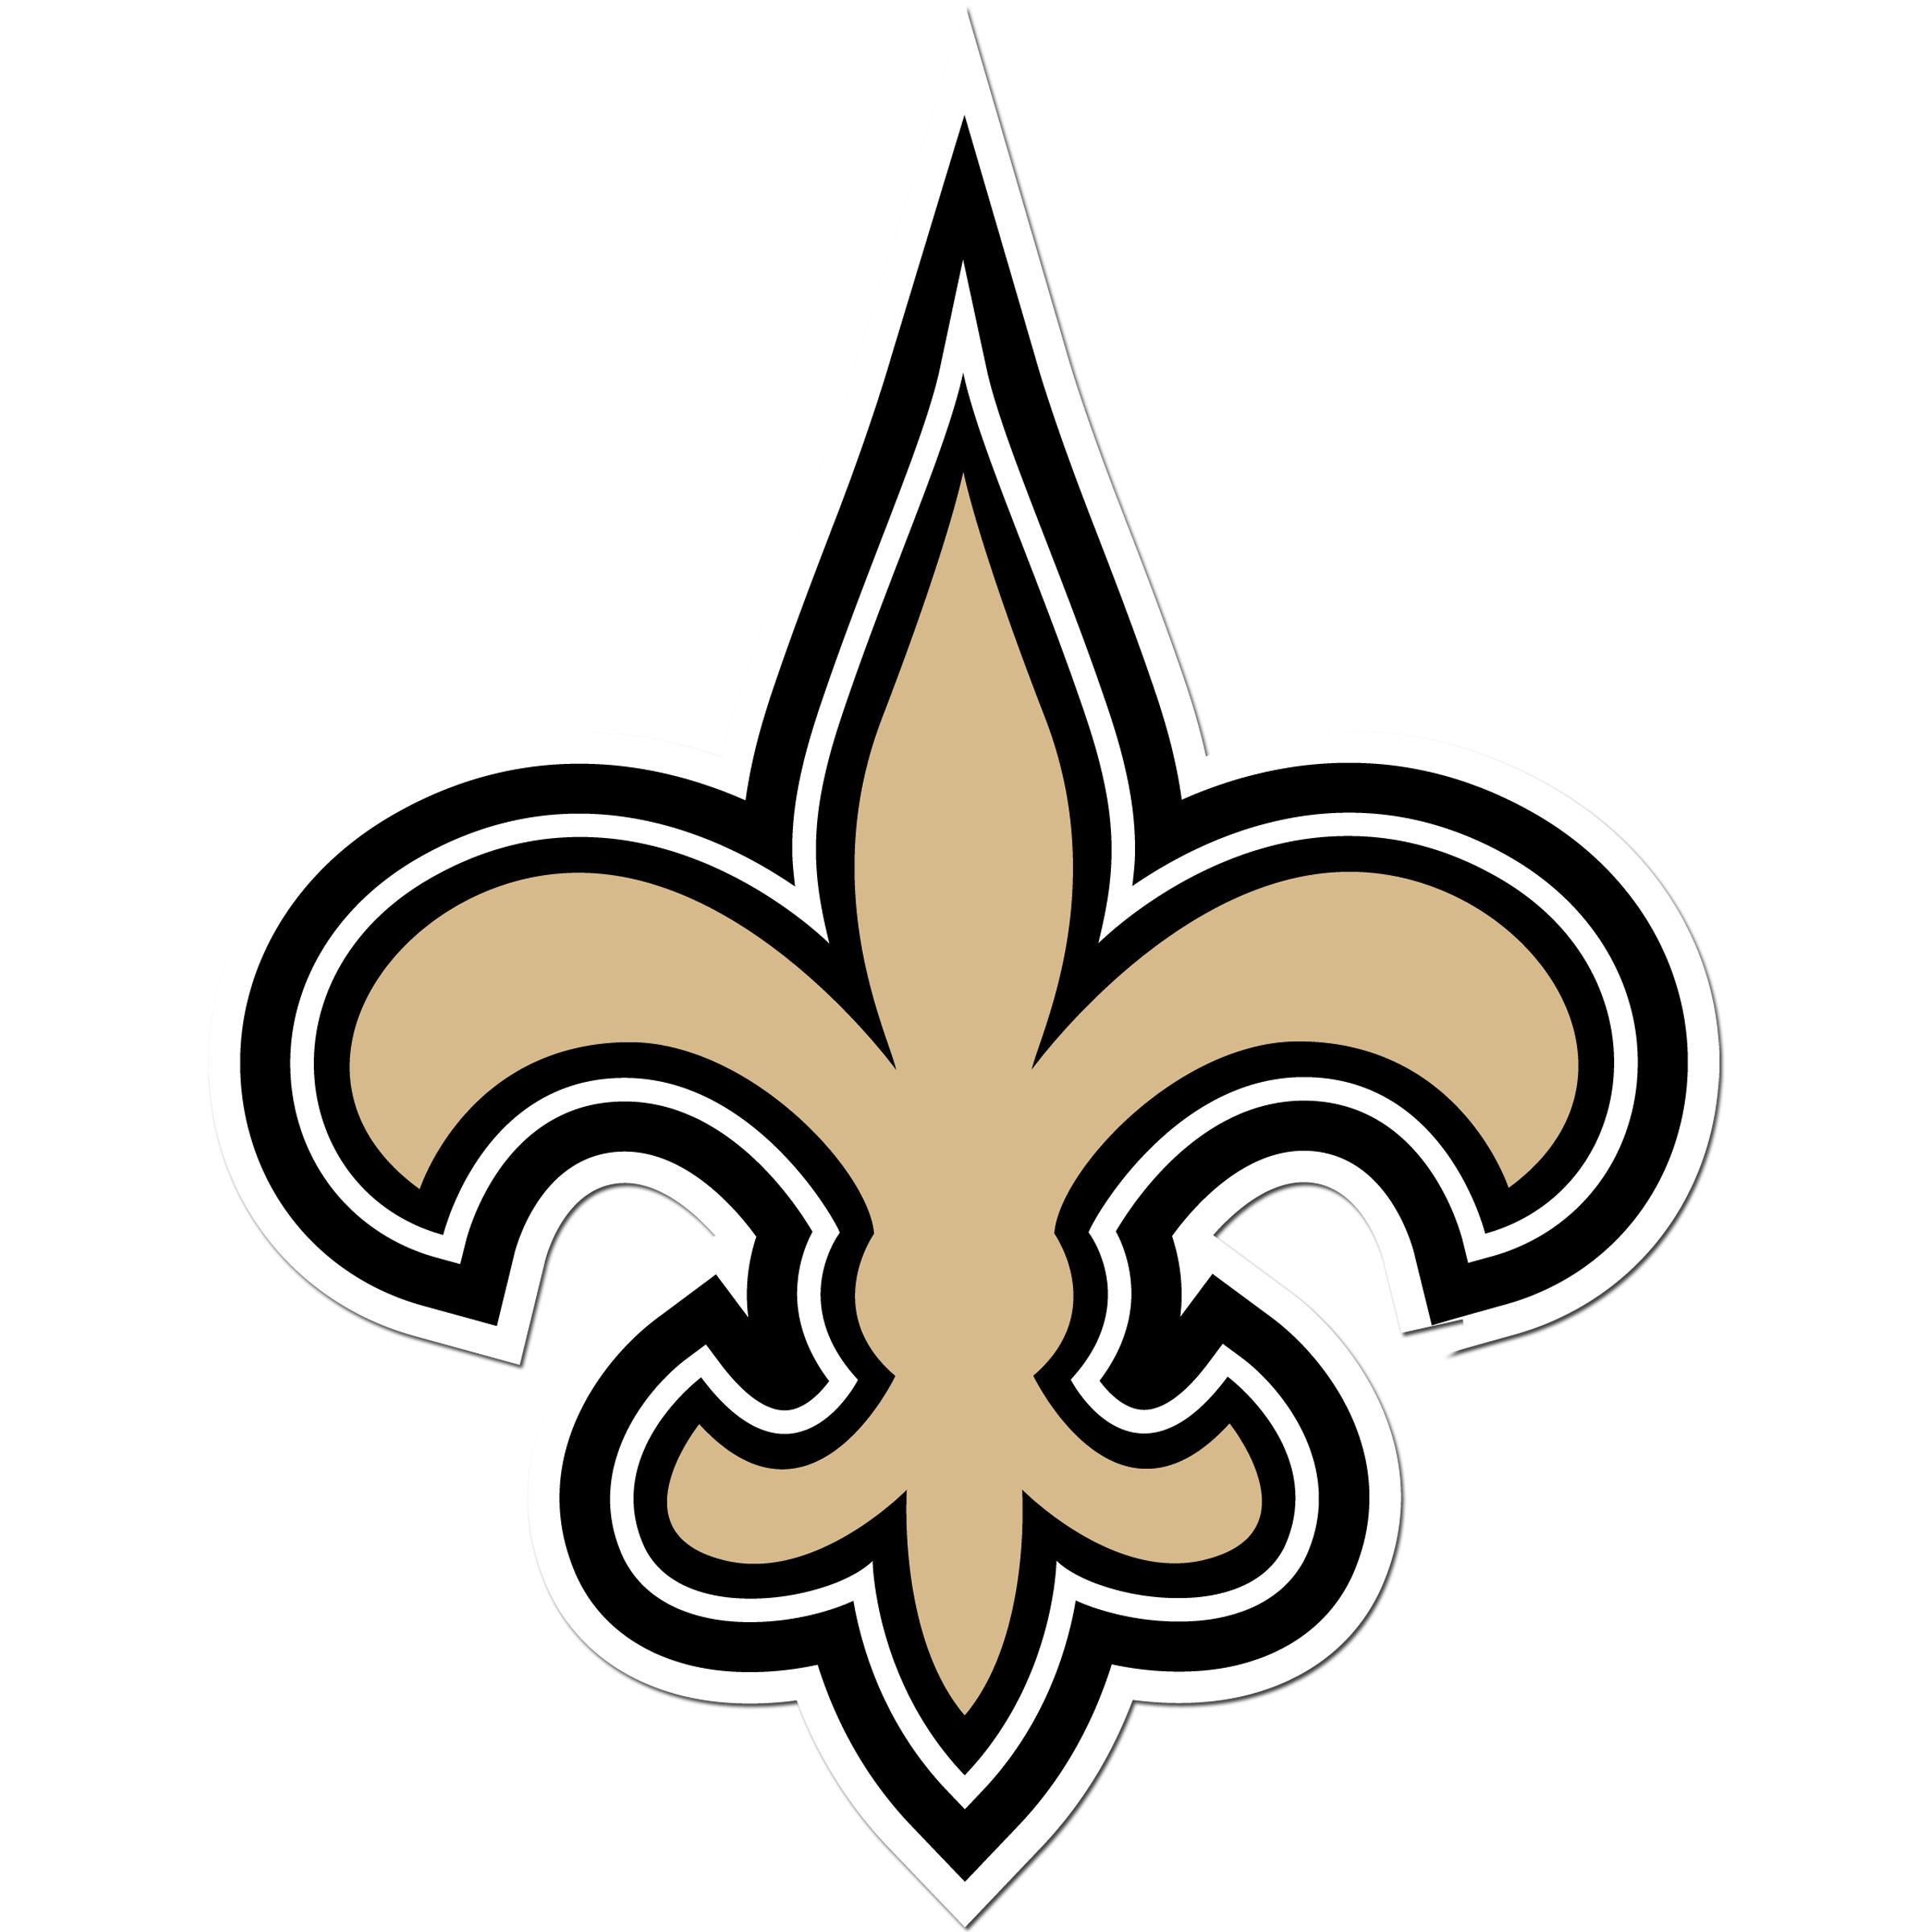 New Orleans Saints 8 inch Auto Decal - This bold, 8 inch New Orleans Saints is a great way to show off your team pride! The low tack vinyl decal is easily positioned and adjusted to make sure you get that logo in just the right spot on your vehicle. Designed to be used on the outside of the window.